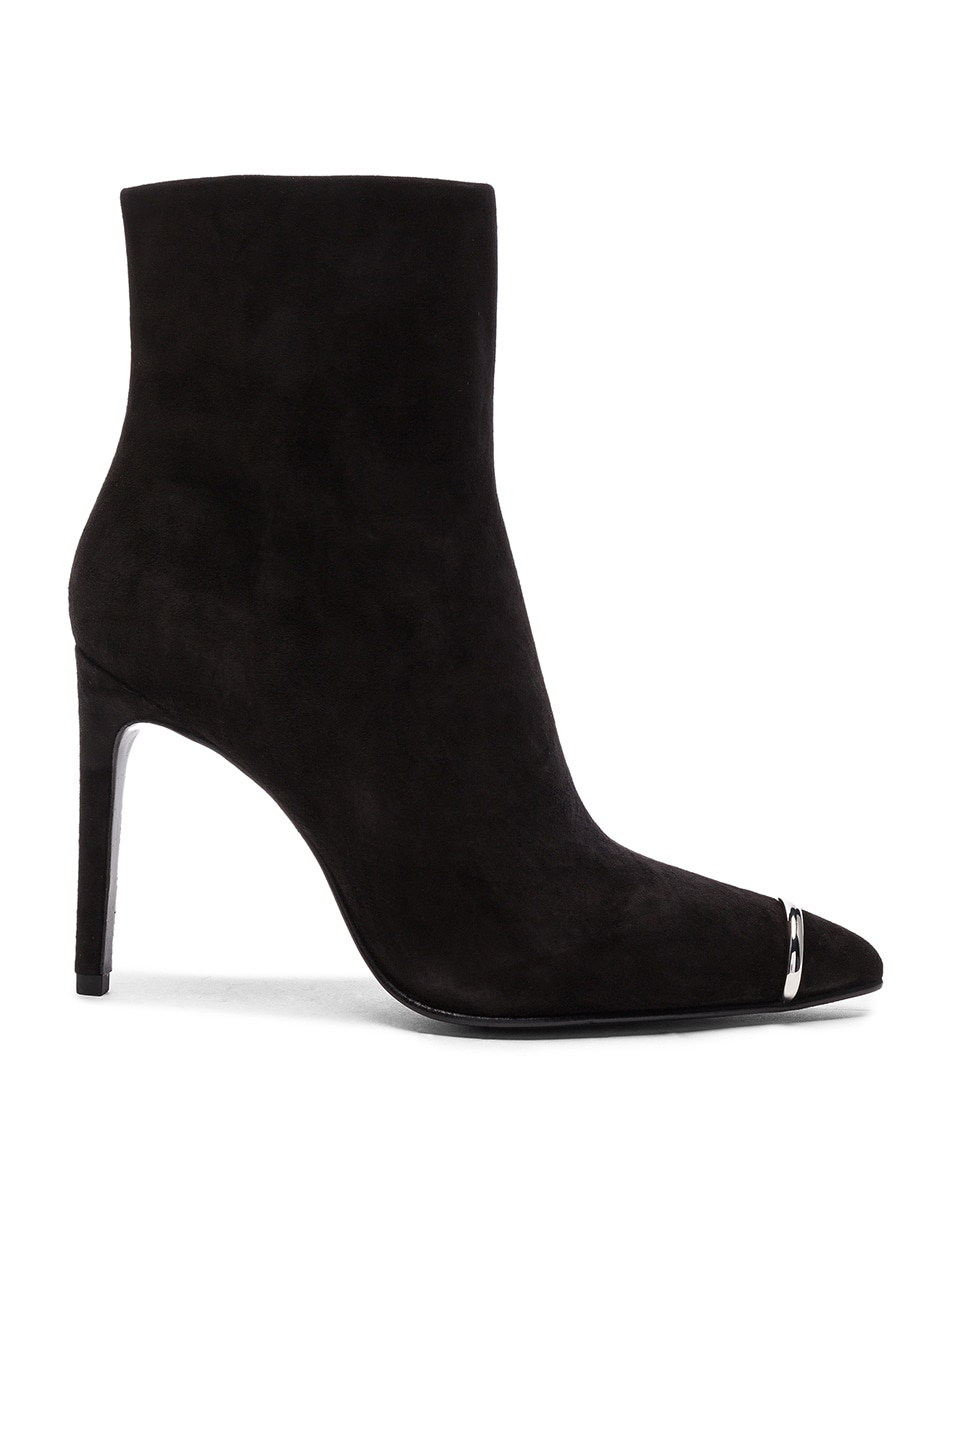 Image 1 of Alexander Wang Suede Kinga Boots in Black Suede